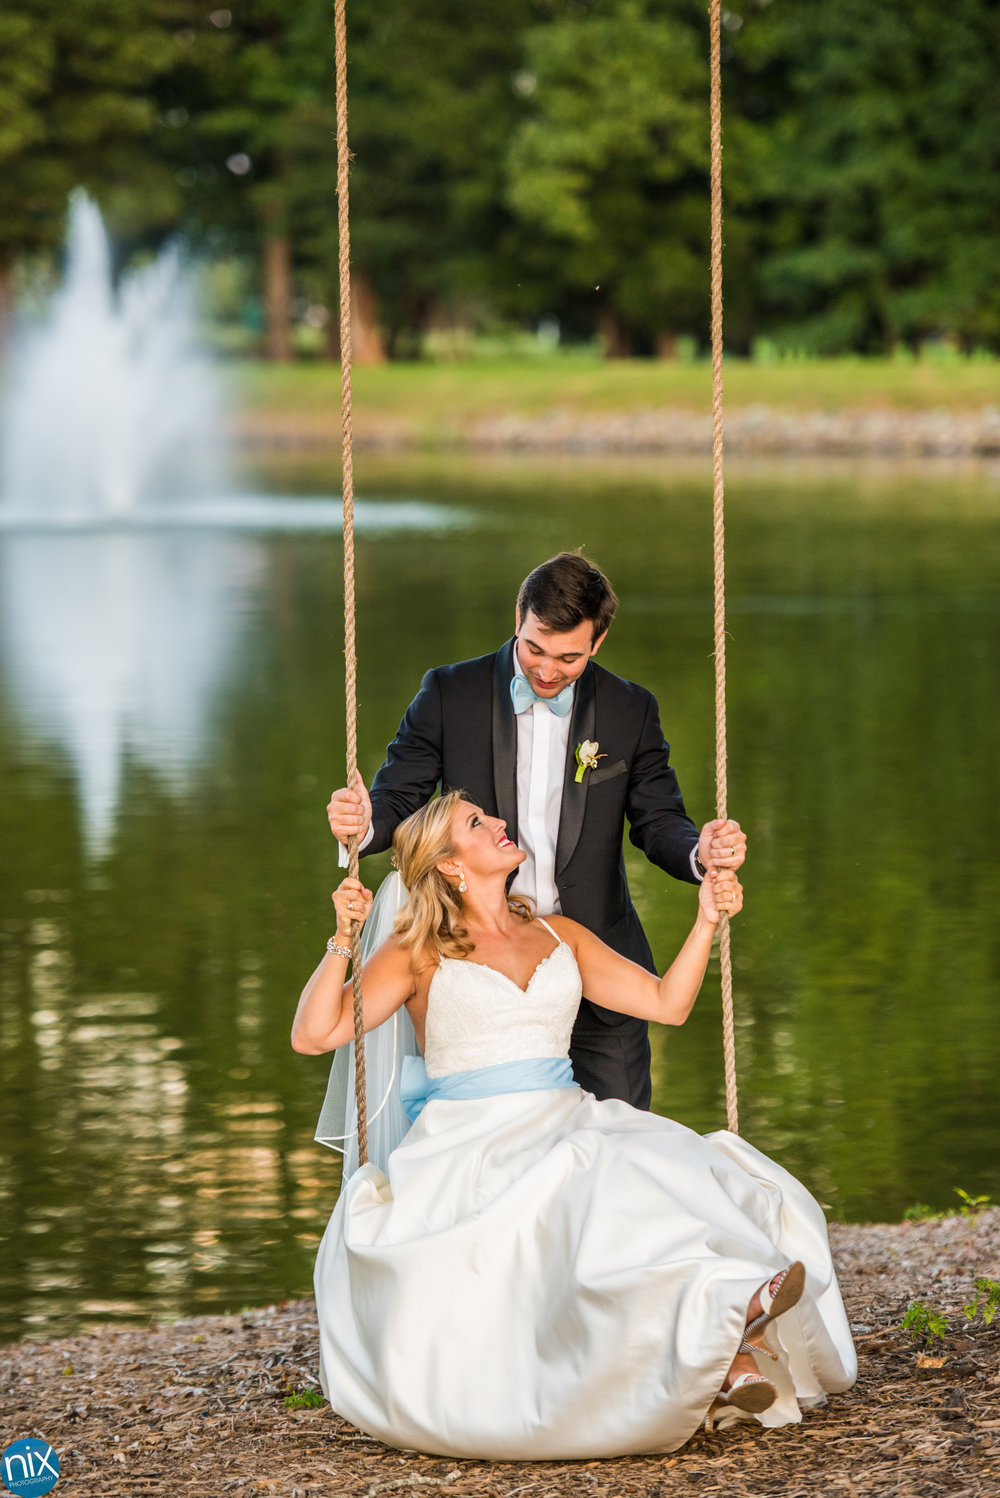 View At Emerald Lake bride and groom swing.jpg